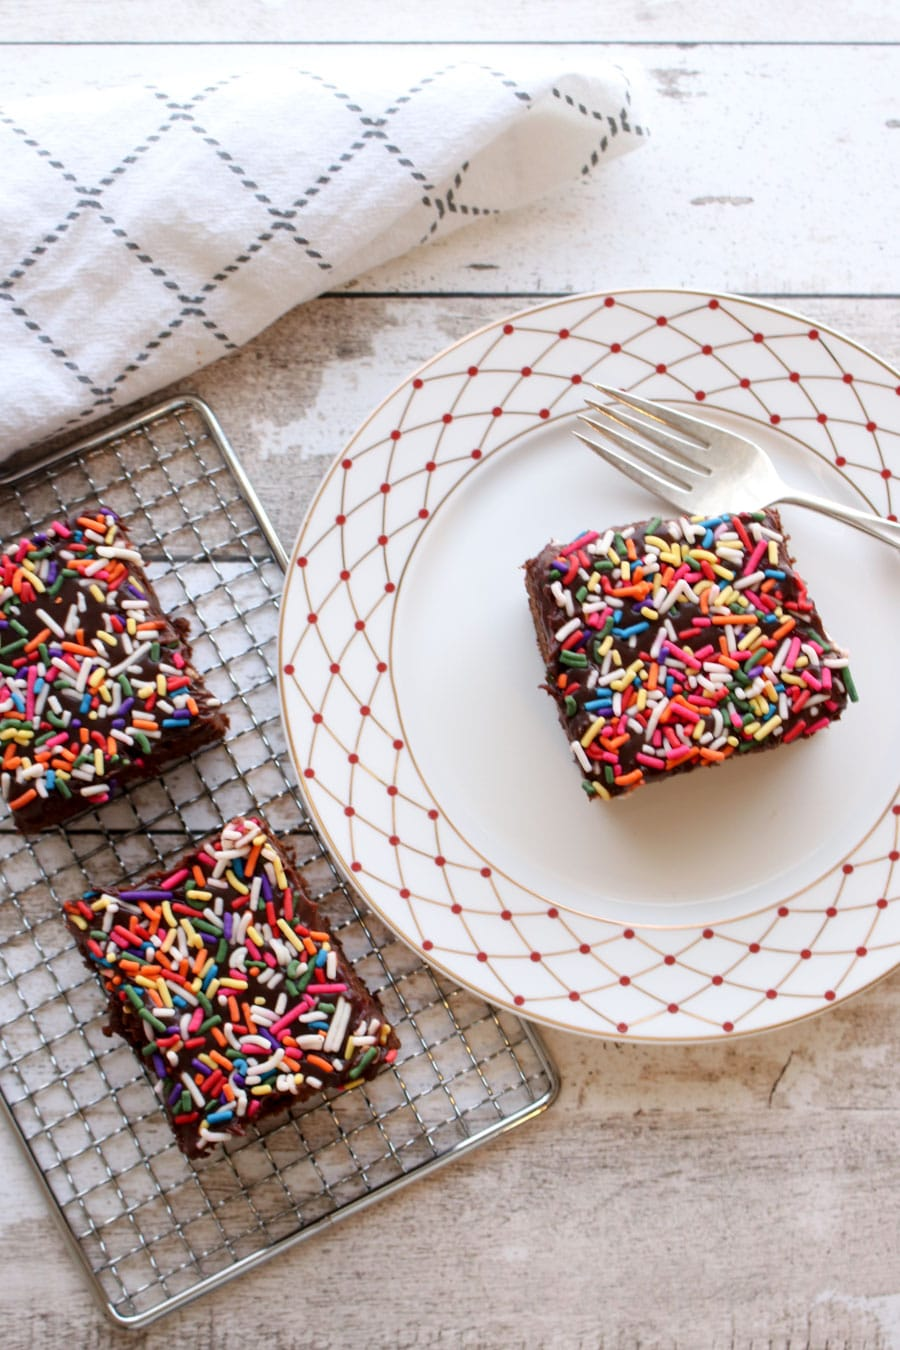 Frosted chocolate cake with sprinkles